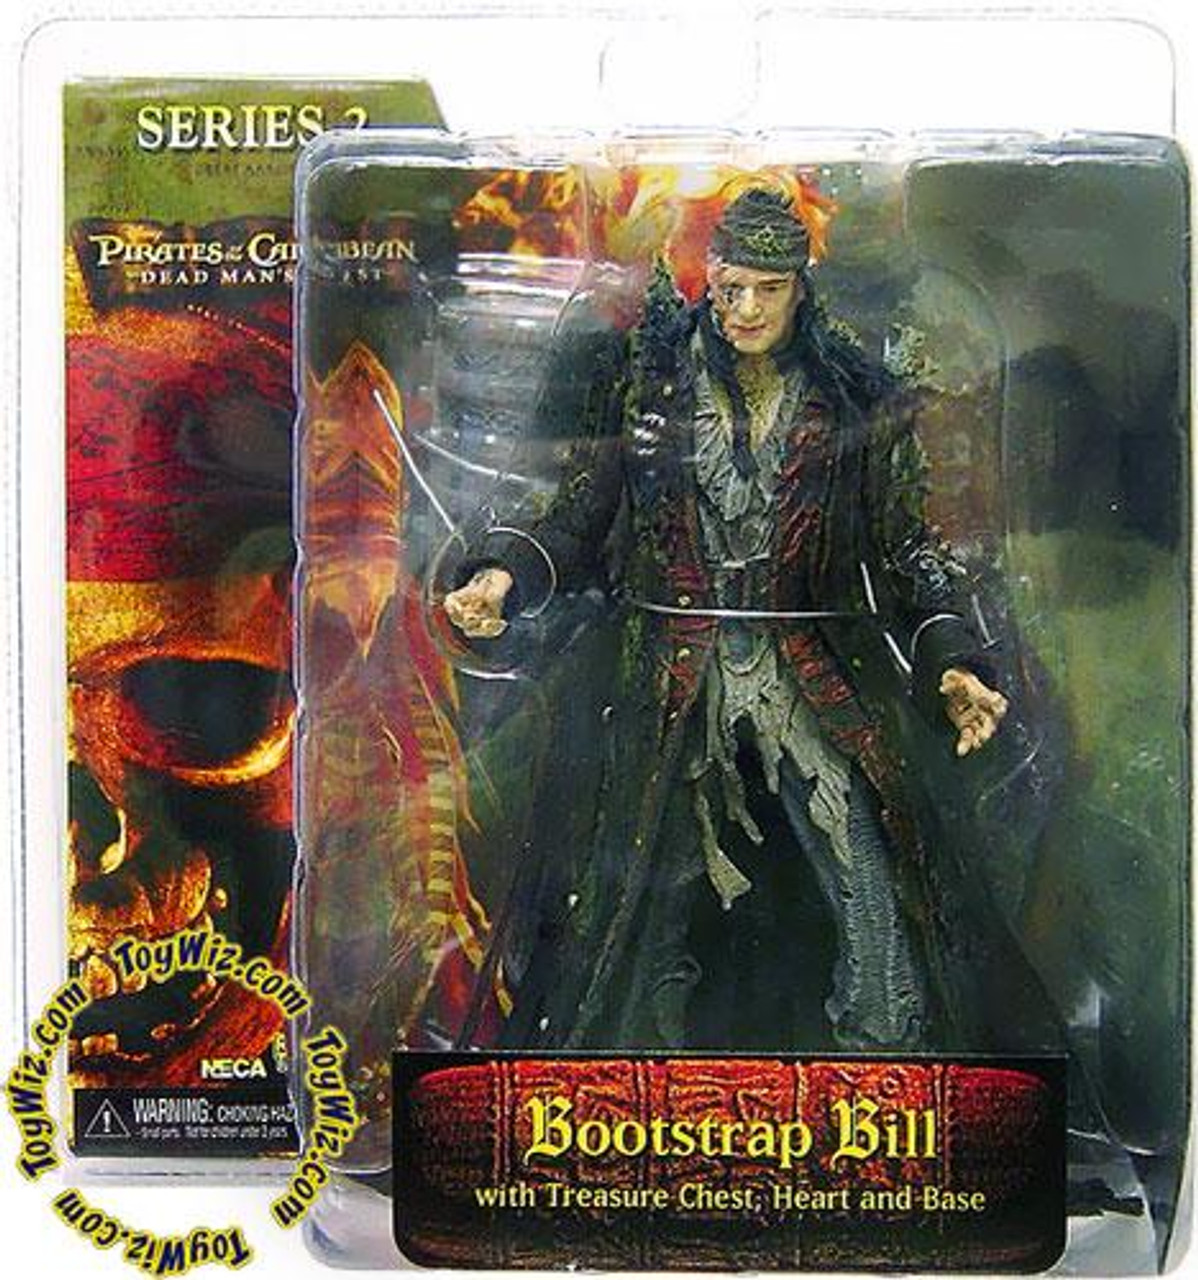 NECA Pirates of the Caribbean Dead Man's Chest Series 2 Bootstrap Bill Turner Action Figure